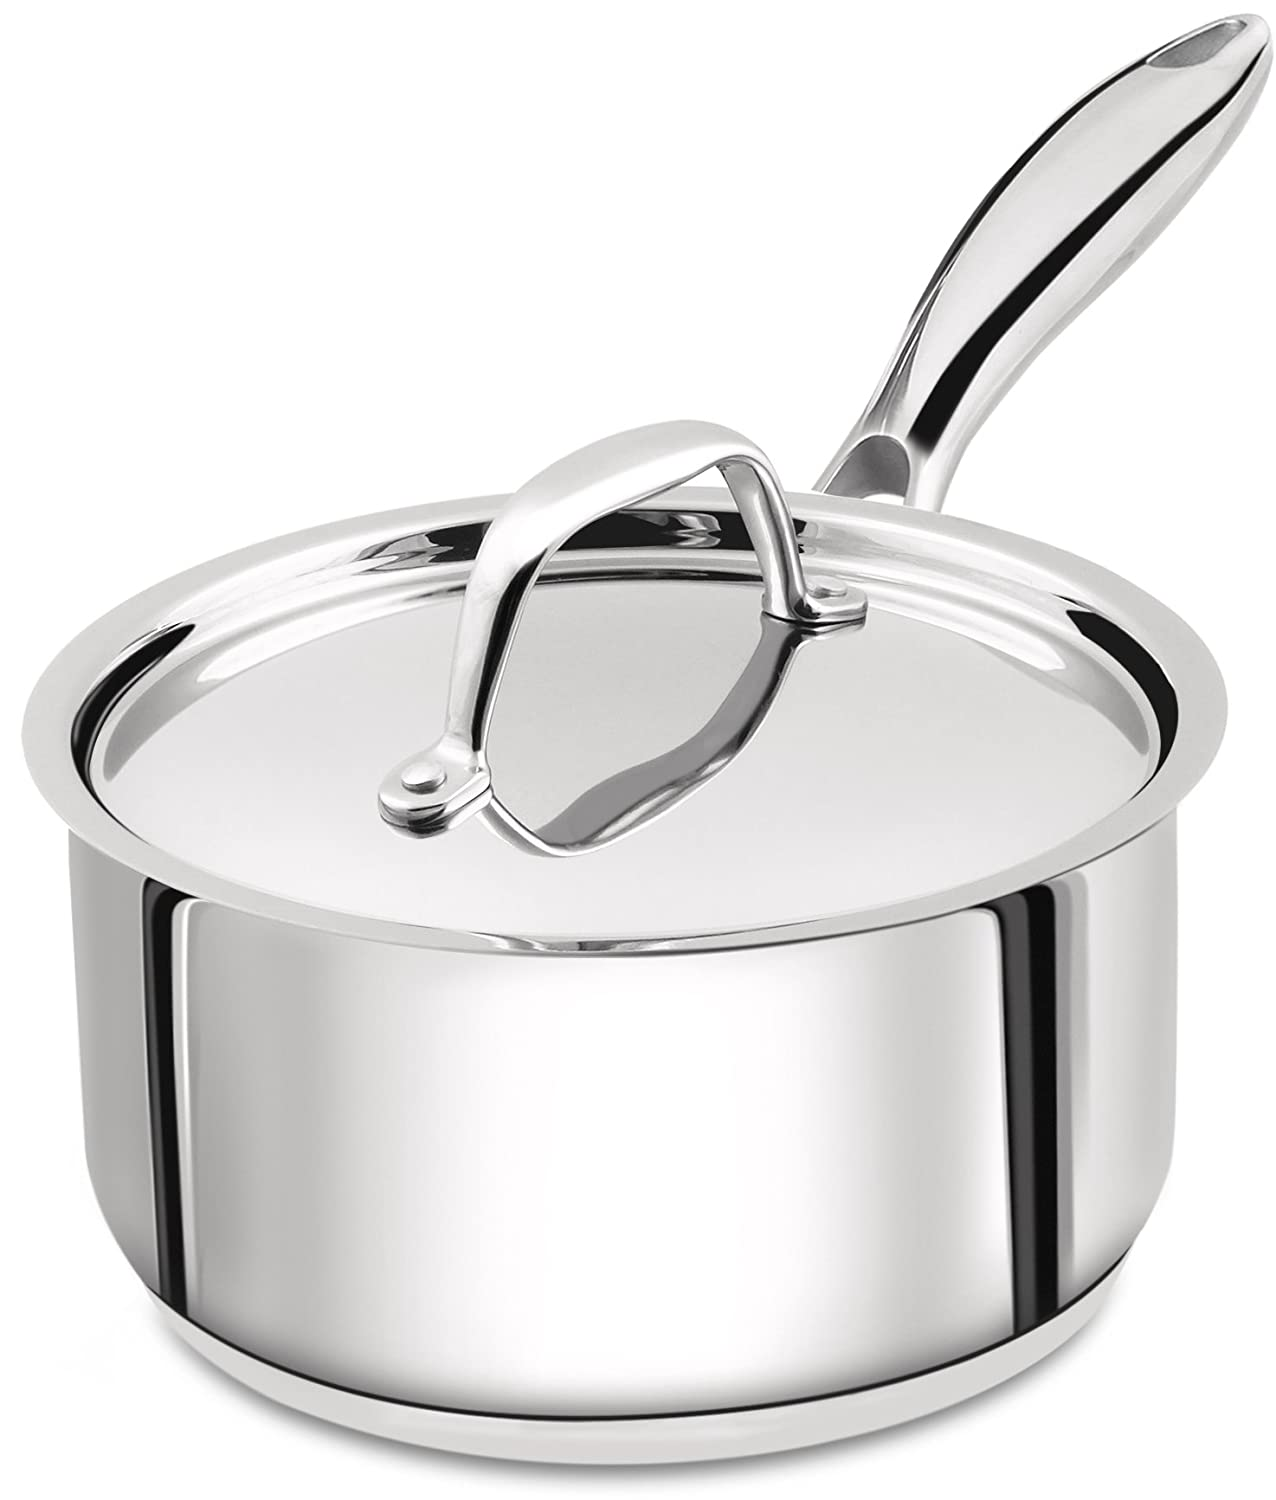 Utopia Kitchen 2 Quart Sauce Pan with Lid - Induction Compatible Stainless Steel Saucepan - Dishwasher Safe UK0145